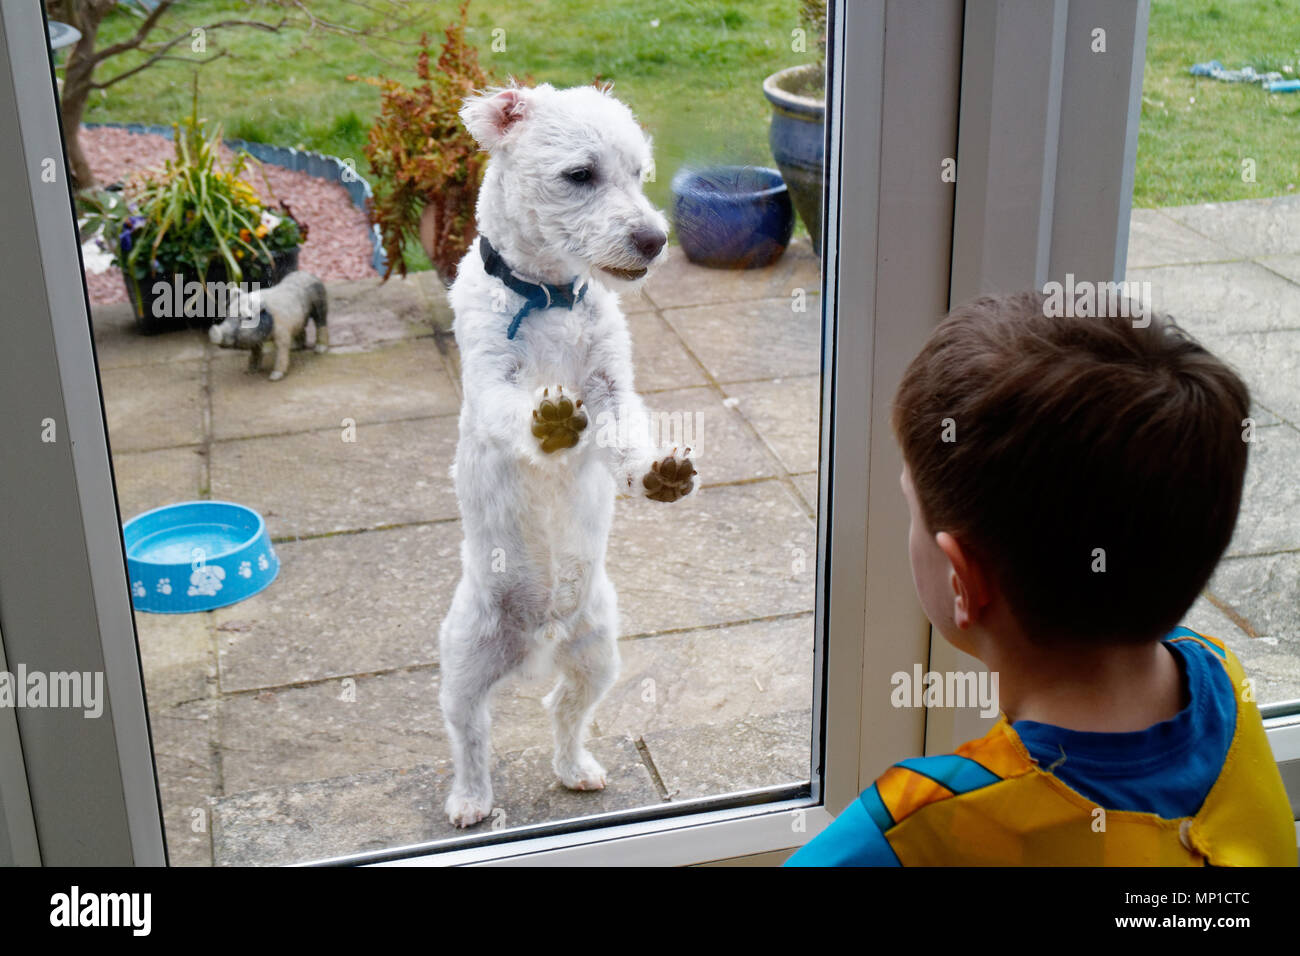 A small dog and a little boy (5 yr old) looking at each other through a glass patio door - Stock Image